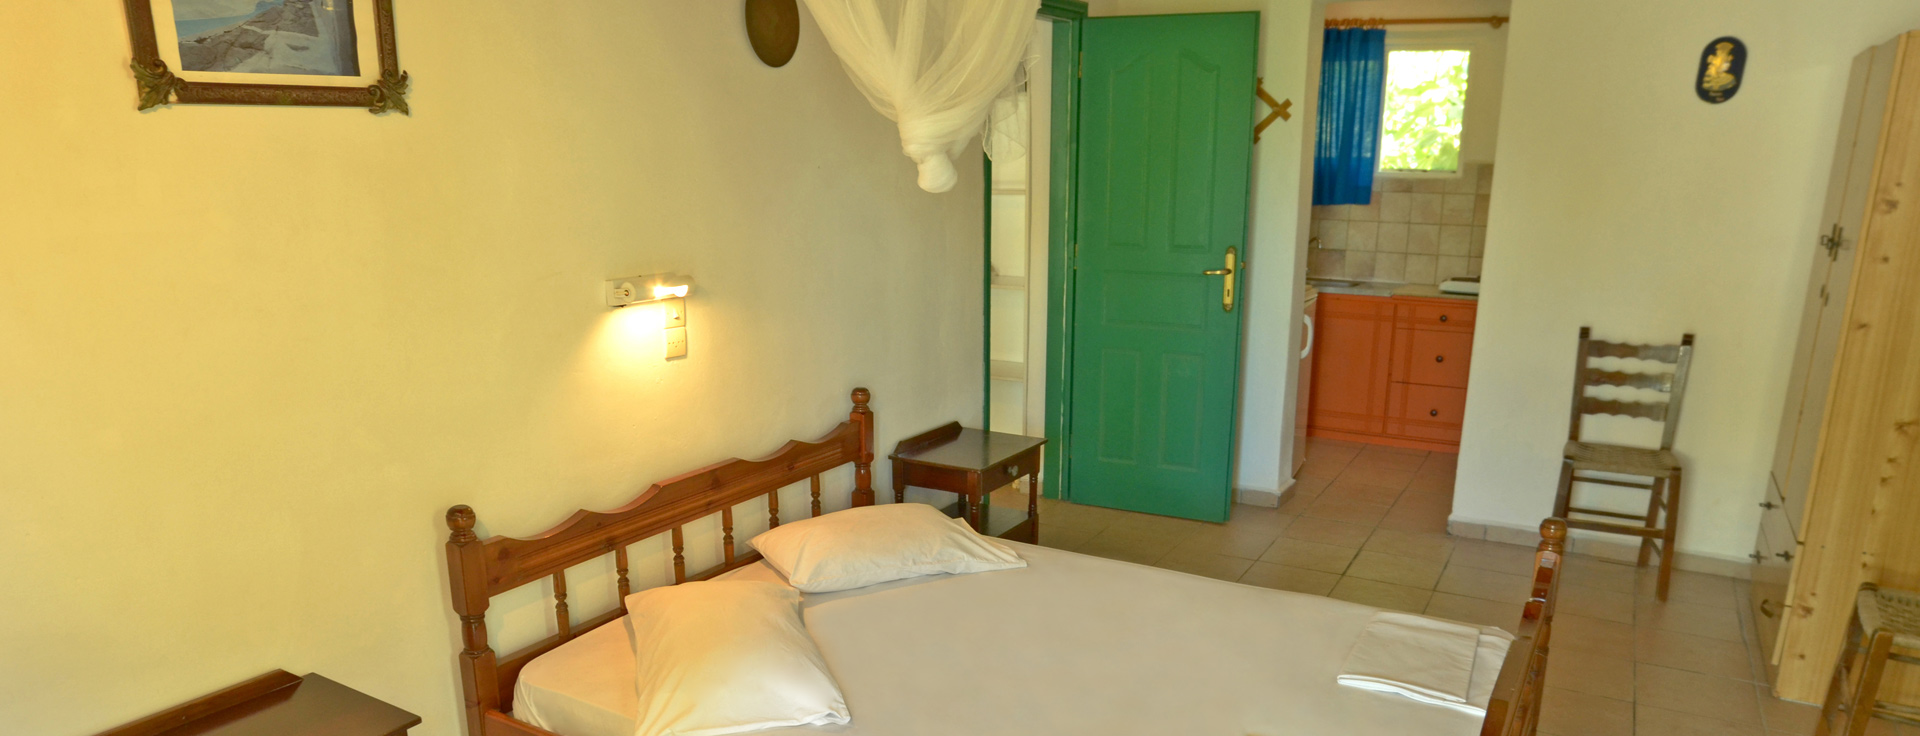 Budget Studio at Lemonia Accommodations with one double or two single beds.